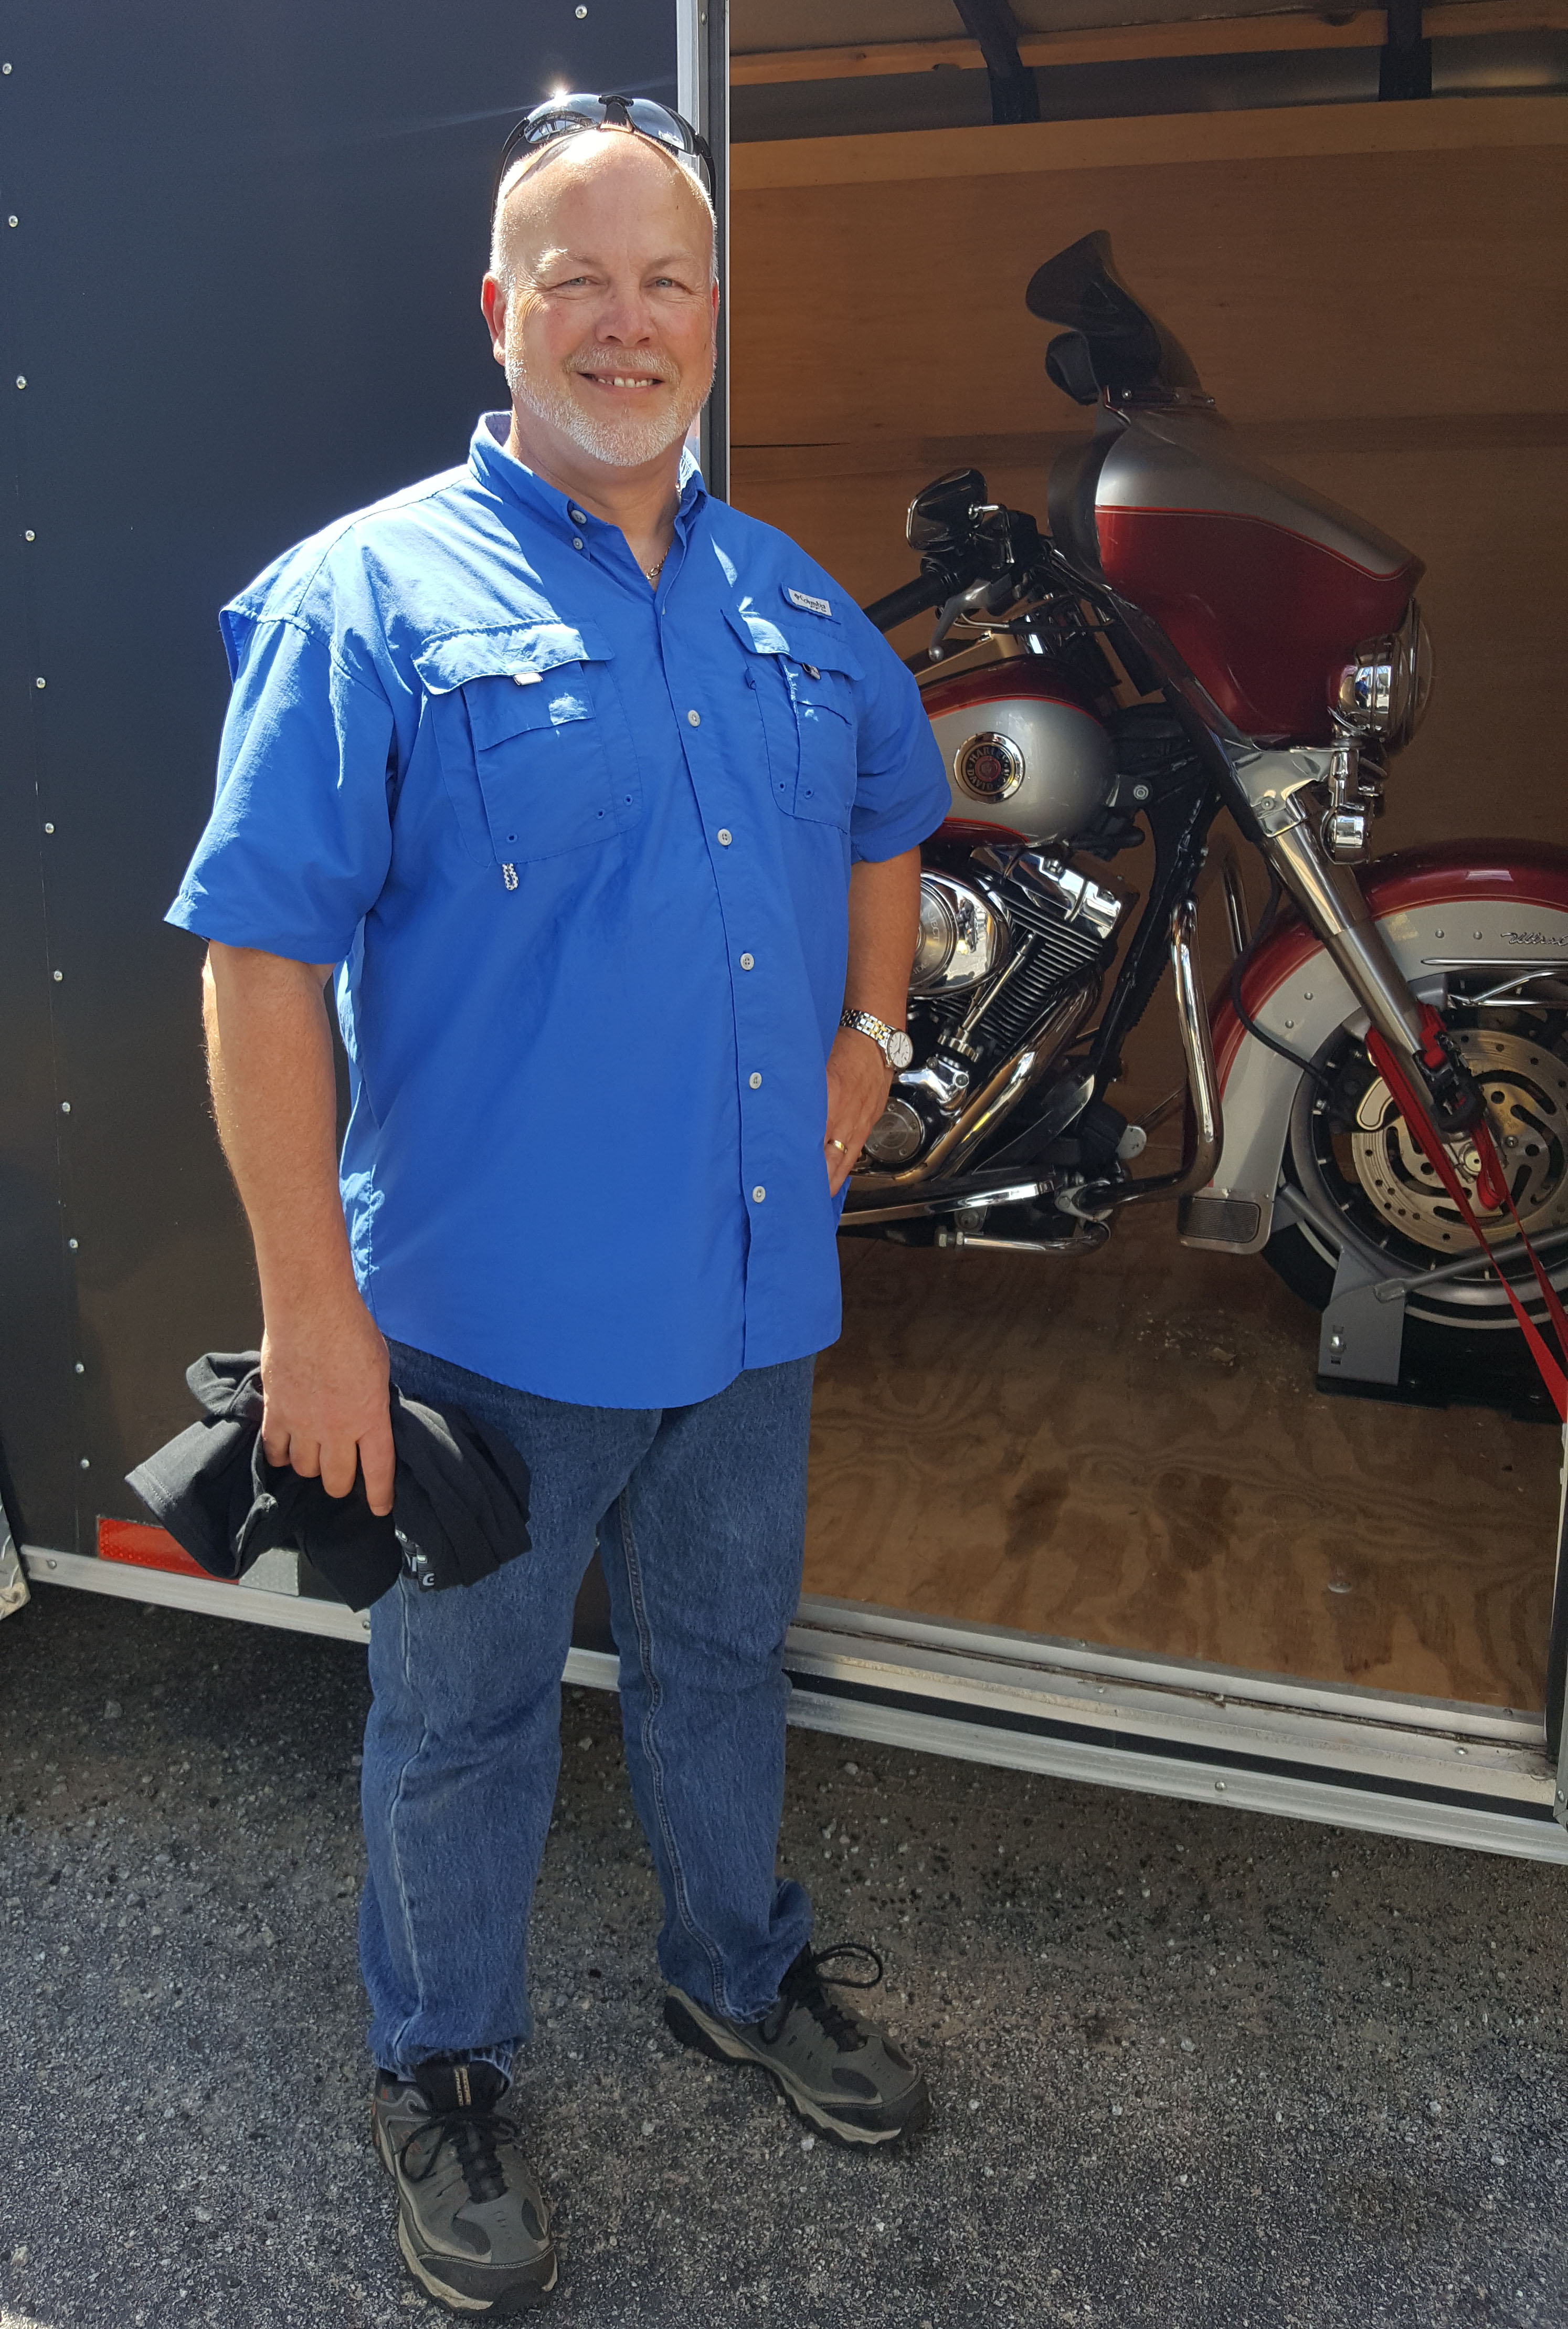 Lane W. with his 2004 Harley-Davidson FLHTCUI Ultra Classic Electra Glide